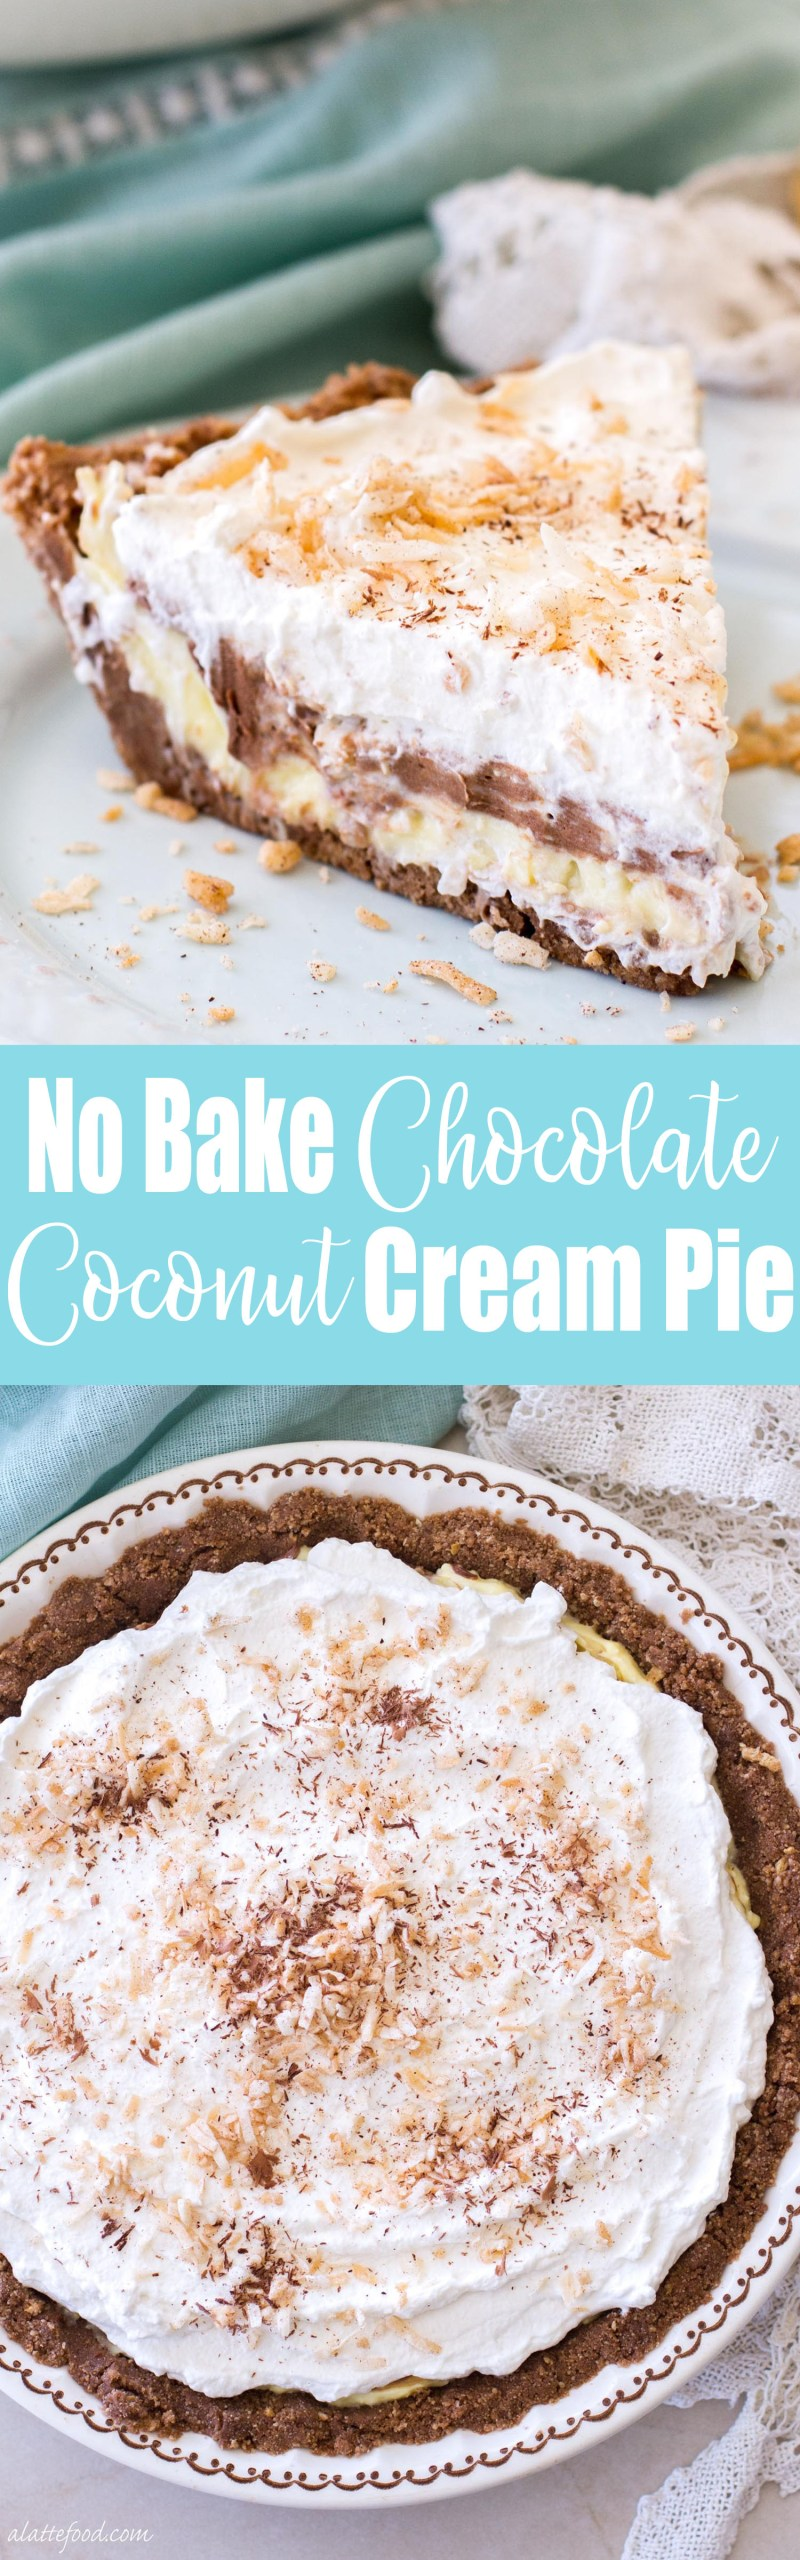 This easy, no-bake chocolate coconut cream pie recipe is the perfect summer dessert! Whipped cream, chocolate cream,and coconut cream are layered on top of a Keebler cookie crust! It's glorious.coconut cream pie, chocolate cream pie, homemade coconut cream pie